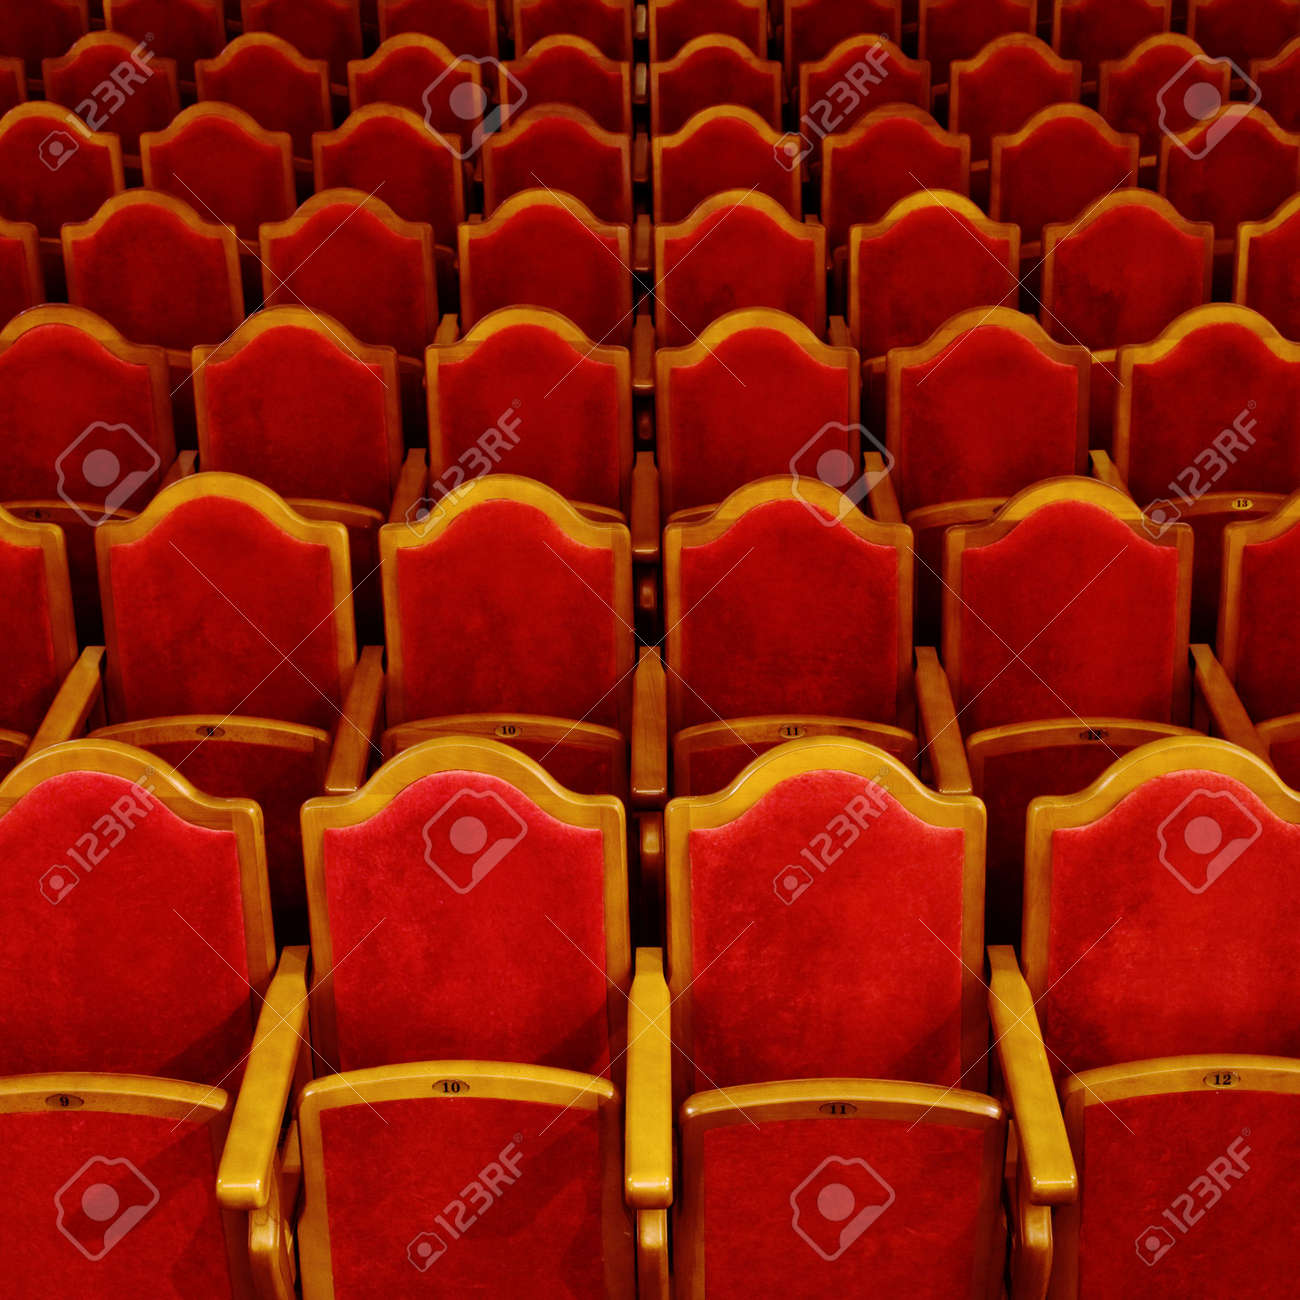 Photograph of the Rows of theatre seats Stock Photo - 4020623